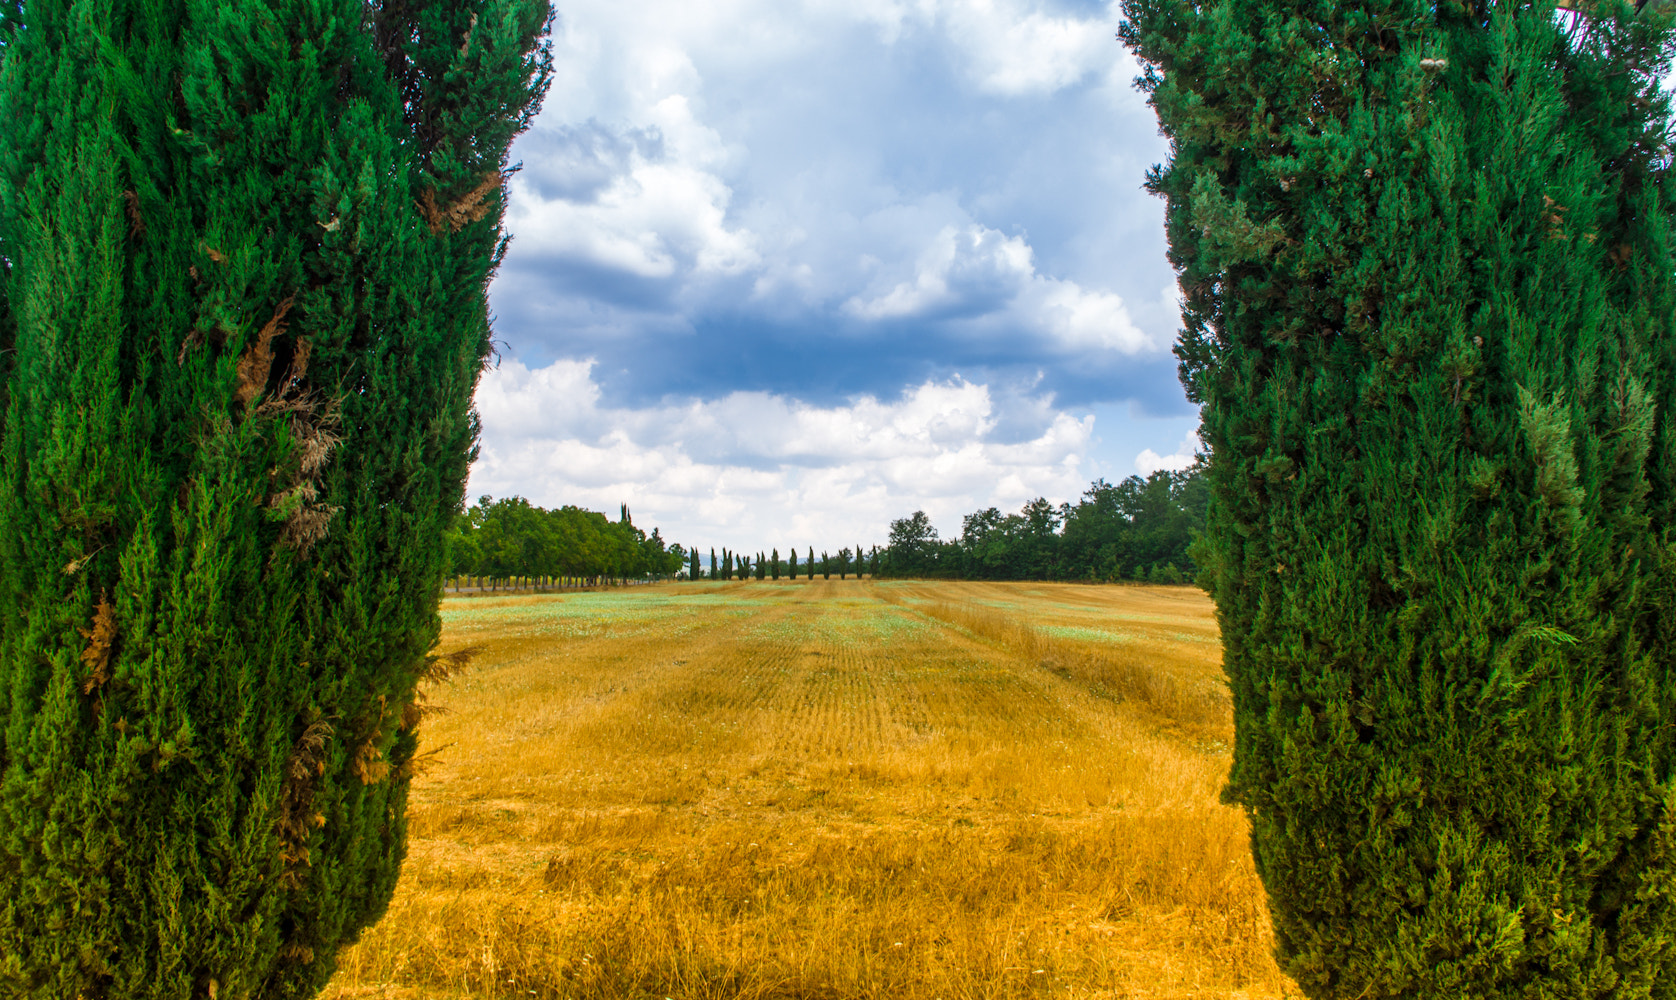 Photograph Cipressi / Cypresses by Federico Tomasello on 500px